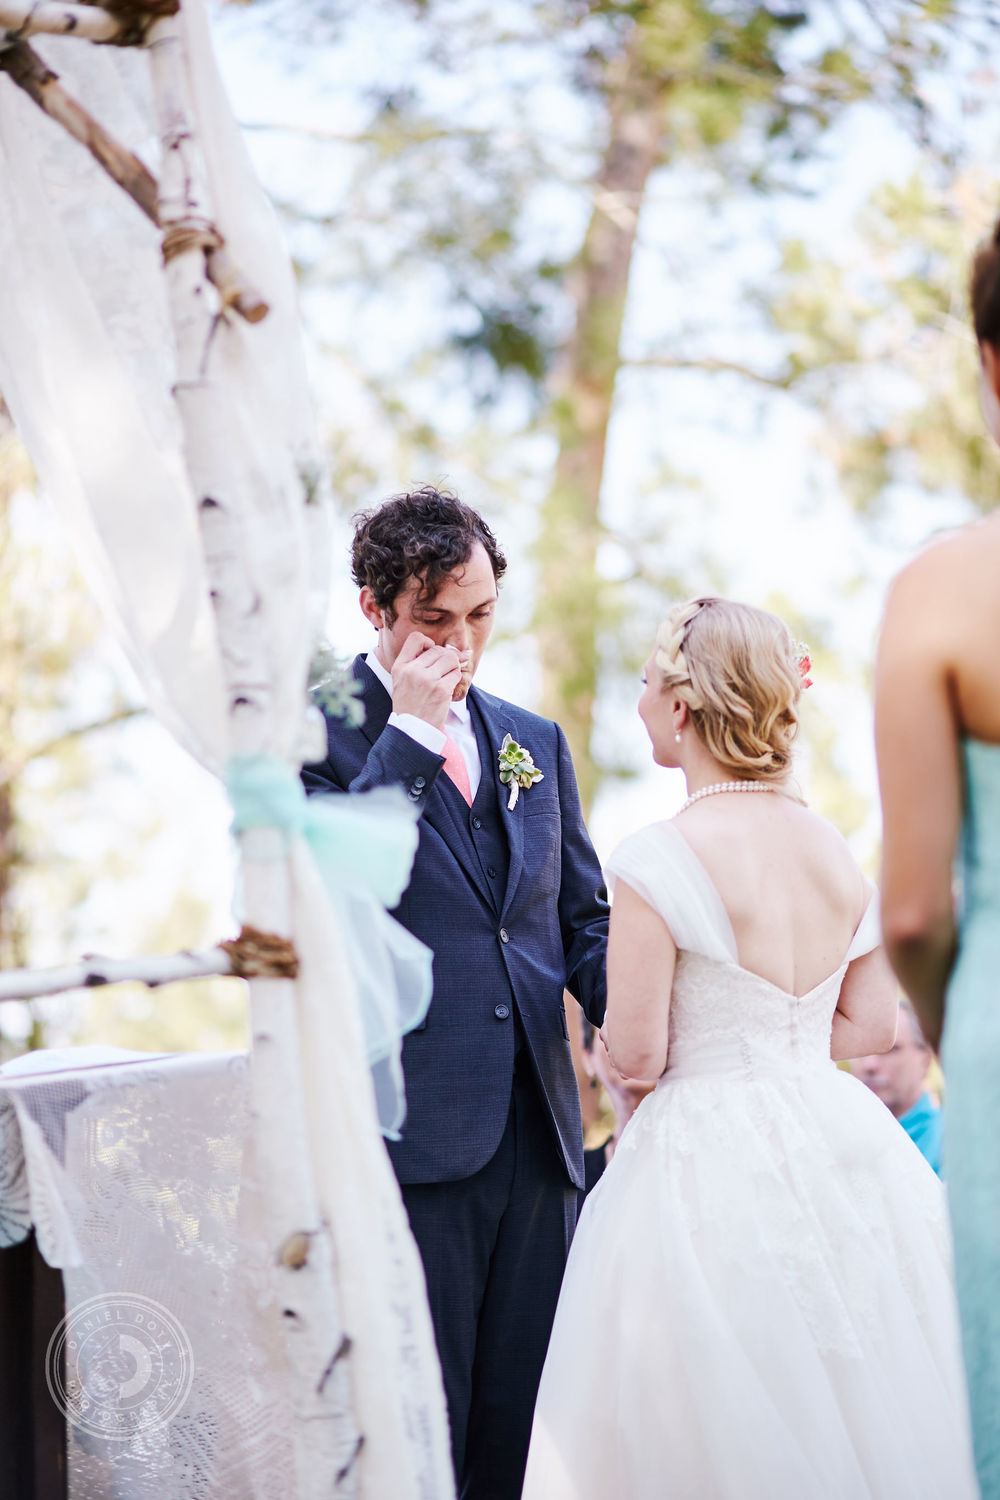 Daniel Doty Photography Erin Colin SoCal Wedding Photographer Strathearn 142.jpg